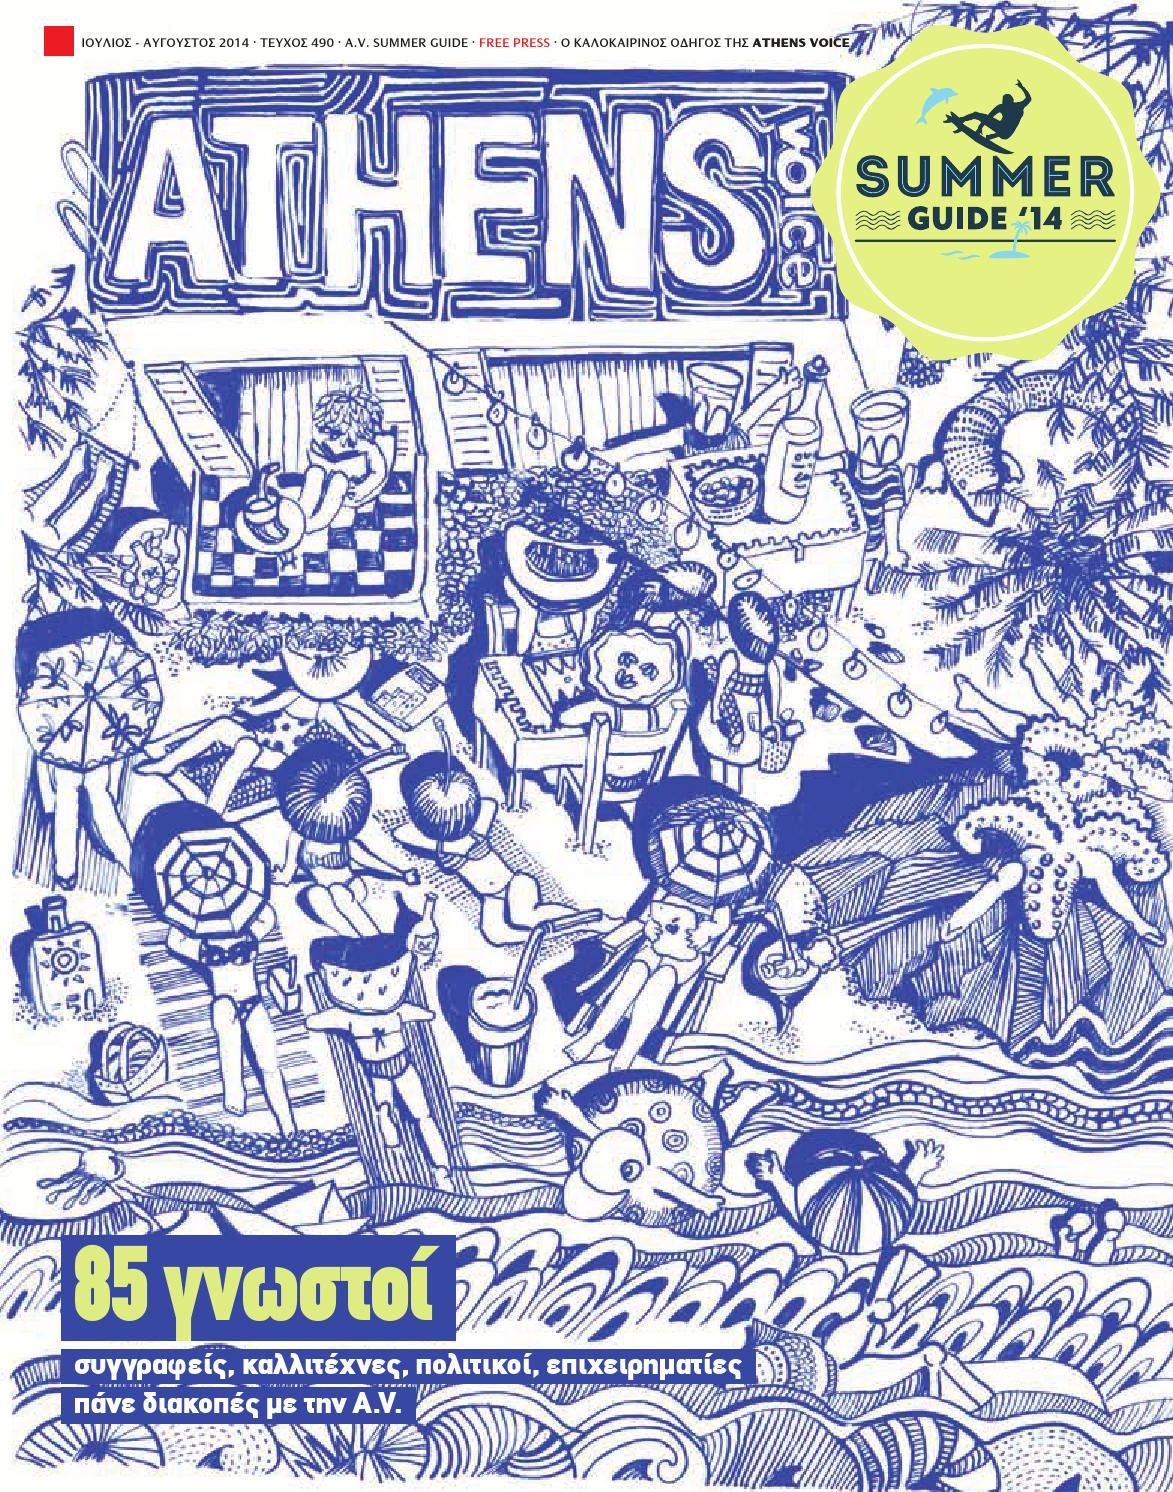 Athens Voice 490 by Athens Voice - issuu feee4d90d4f